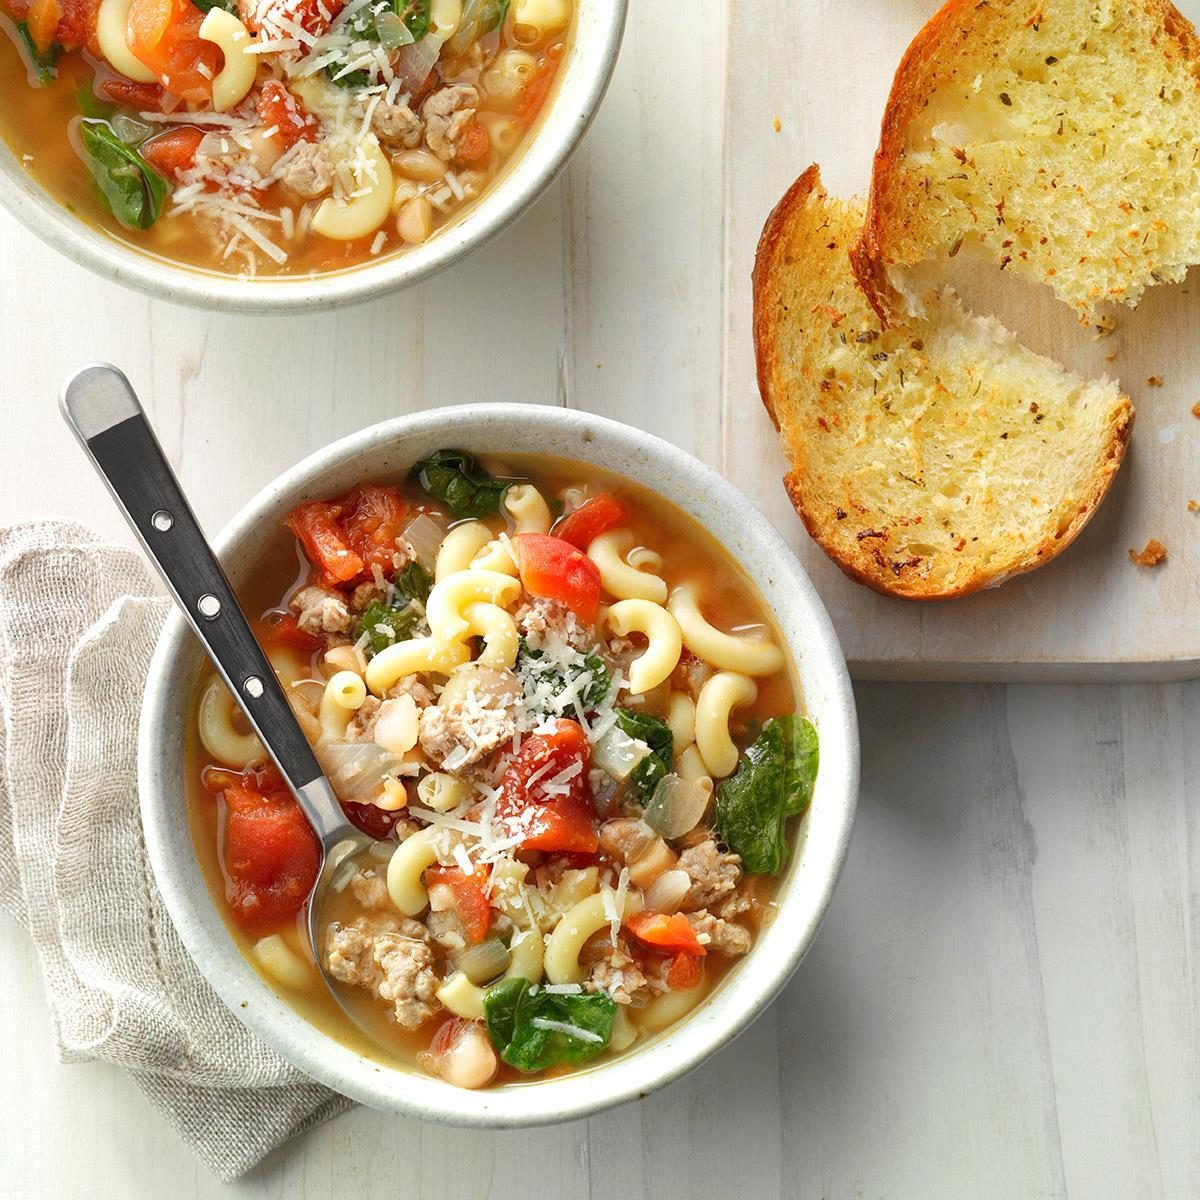 Bowls of Pasta Fagioli soup with French bread